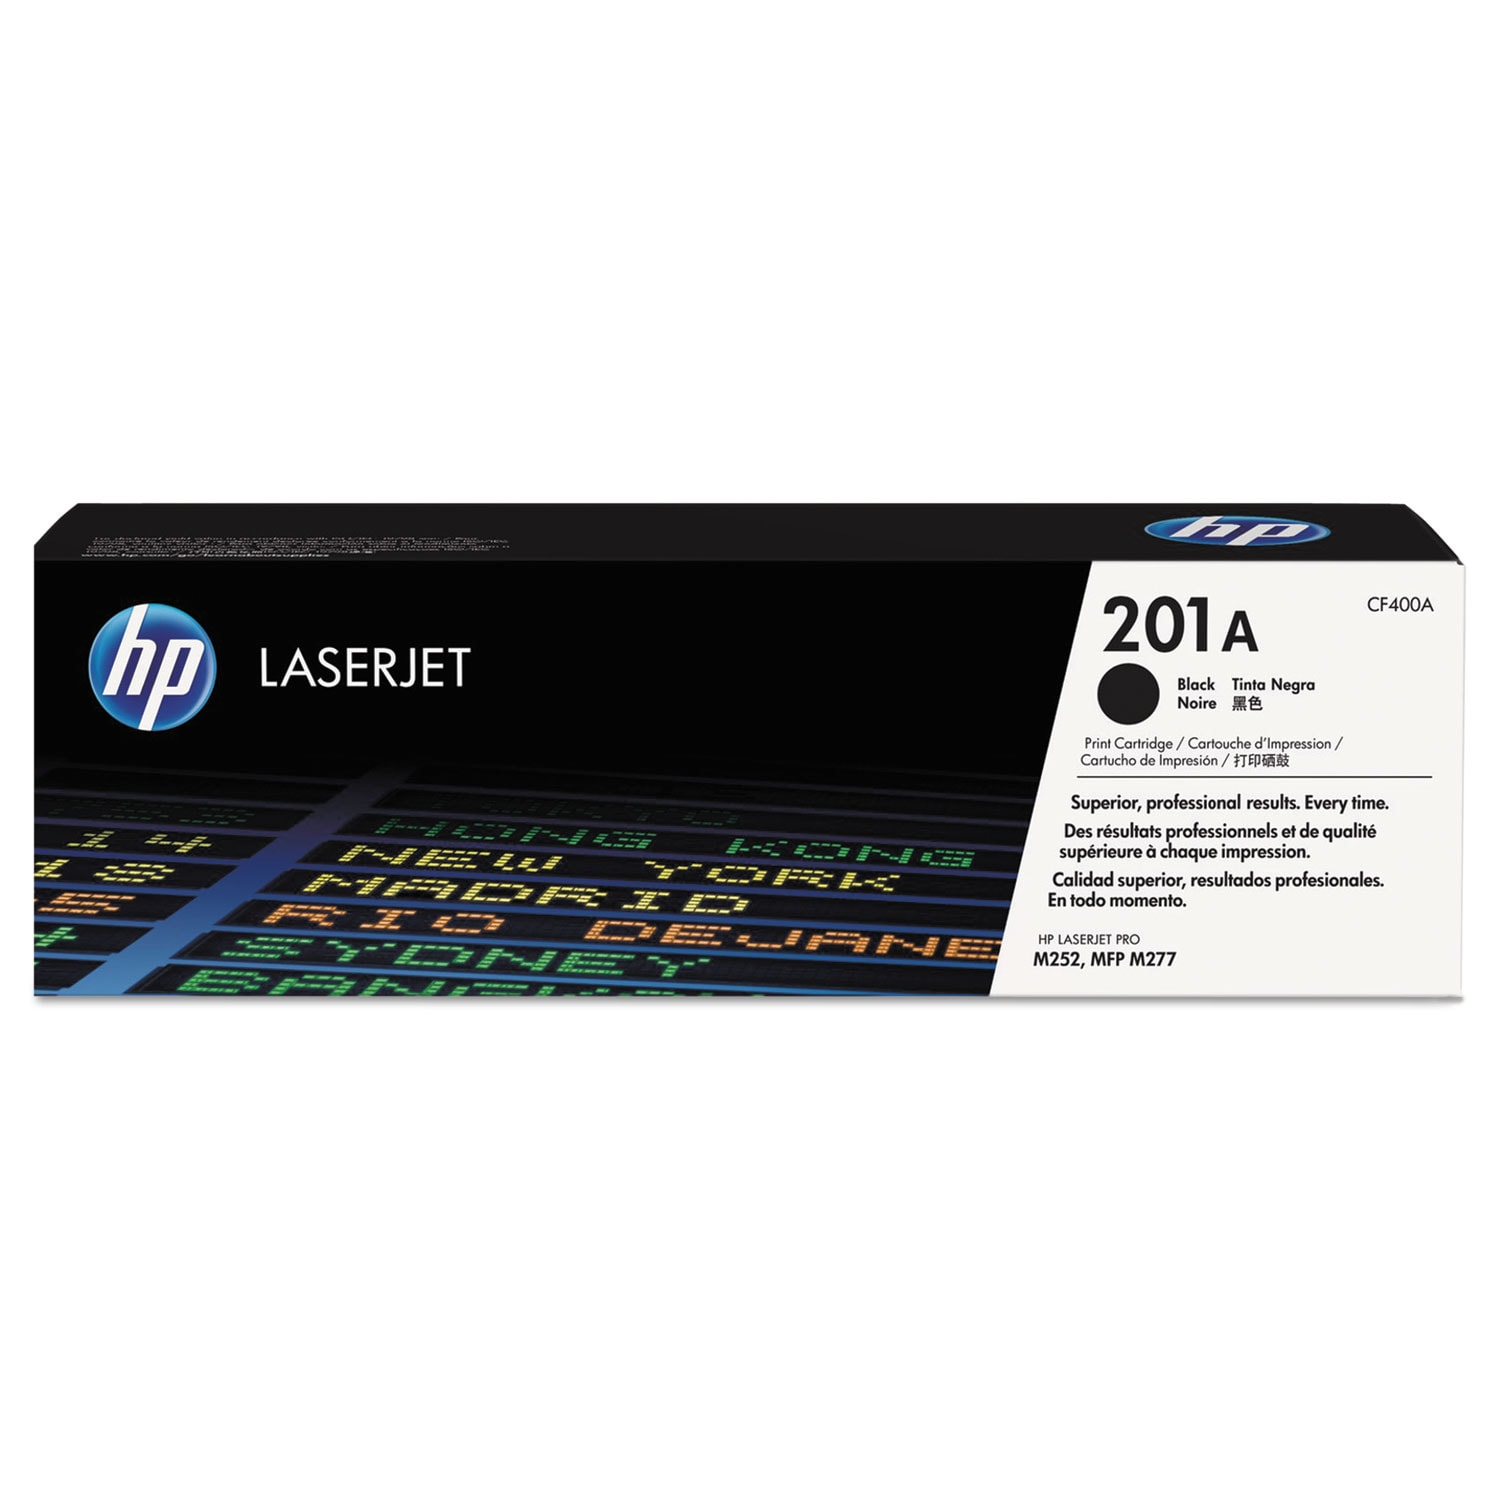 HP 201A Original Toner Cartridge - Black